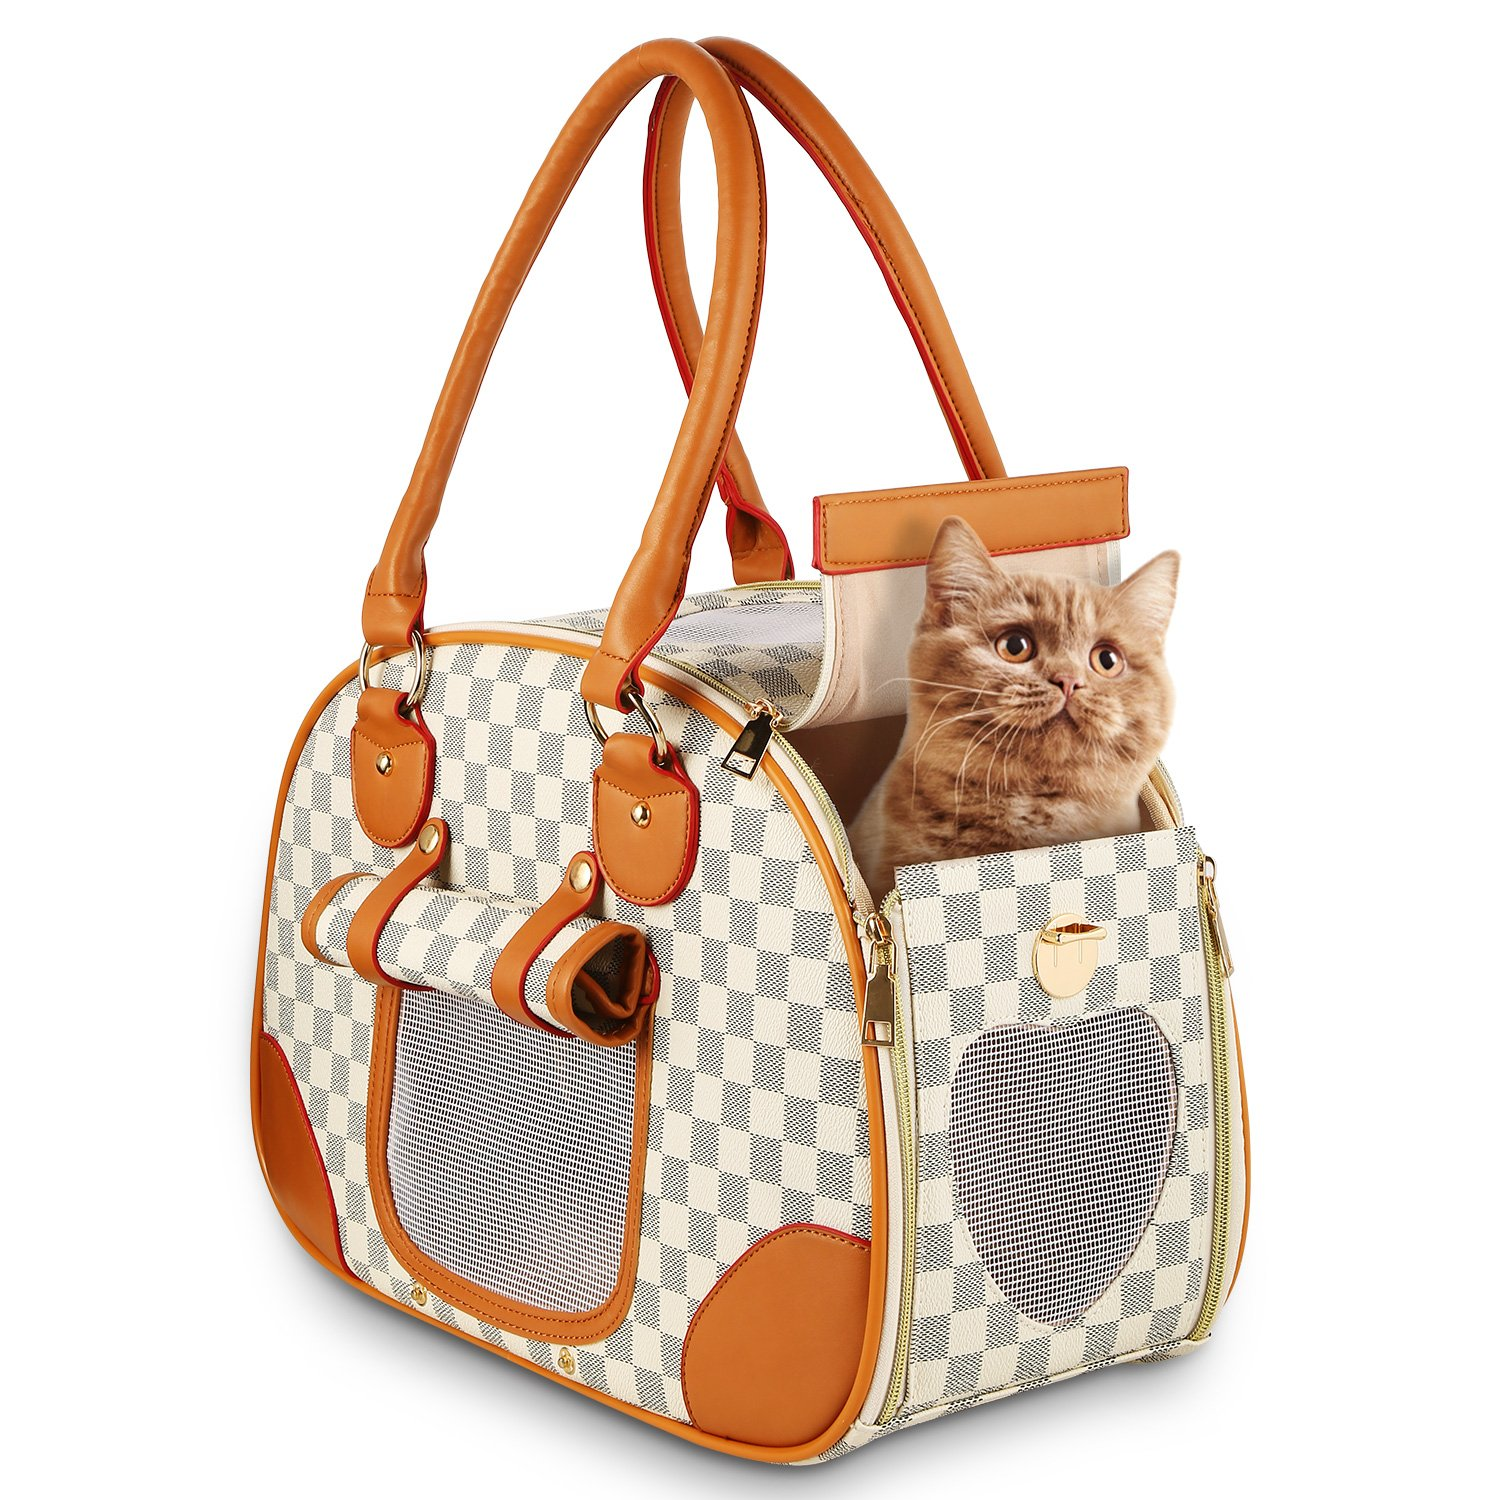 wot i Soft Sided Pet Carrier, Cat Carrier Dog Carrier Airline Approved Pet Carrier Suitable for Small Dogs and Cats, Medium Cats and Dogs, Puppy, Kittens, Small Animals, Luxury PU Leather Travel Bag by wot i (Image #1)